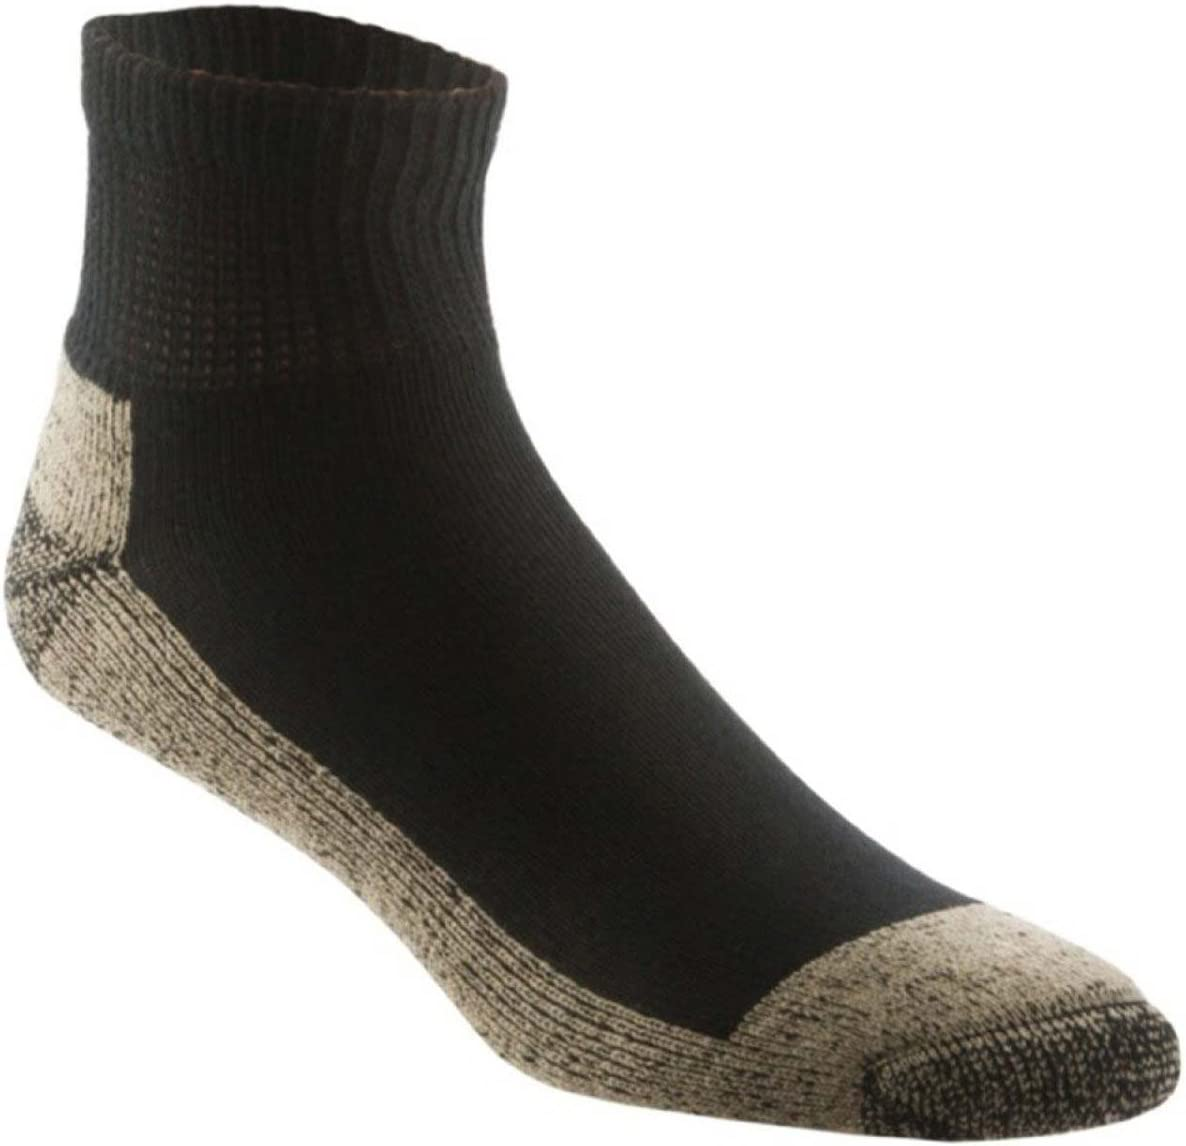 Black Large Aetrex Copper Athletic Ankle Sock